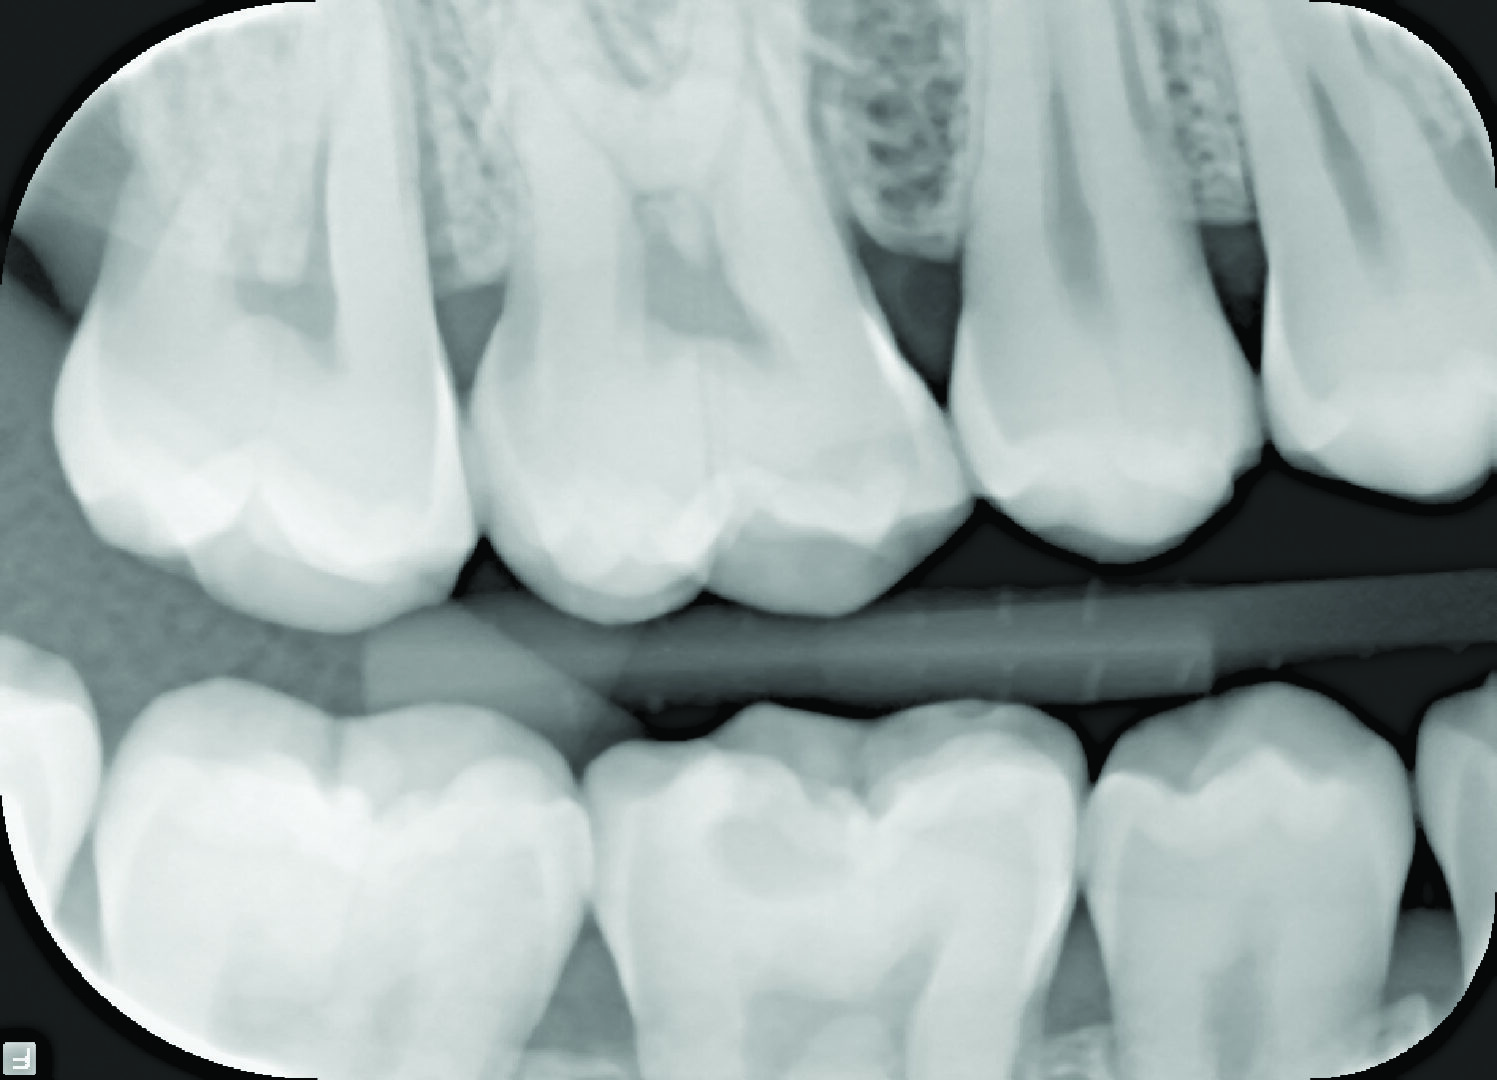 """Intraoral X-ray image     PaloDEx Group Oy, Snapshot intraoral sensor (large)     2012-01-09     14:54:20     intra     0935588c-d8f9-4a08-aace-39408256020b     0     1     CliniView 10.1.0.2     1.2.840.113999.1002.154491020.1242093817.793291601793896106     d     0                                                         948     684     7           Snapshot (large)     Intraoral X-ray sensor     Dicc (Dicc.dll 1.6.4)     17     2012-01-09     14:54:20     3200000316486f2d     3200000316486f2d     0     0     V01/PAG=d2954e4a-eb6e-4dd7-97f4-e4291eb35869/STG=d31bd7be-f737-4e12-92b1-ed64b5a3f88d/SEG=adddcacf-9ecc-4b57-ab13-2b95d30f1fbe     <Attribute name=""""device_seria"""